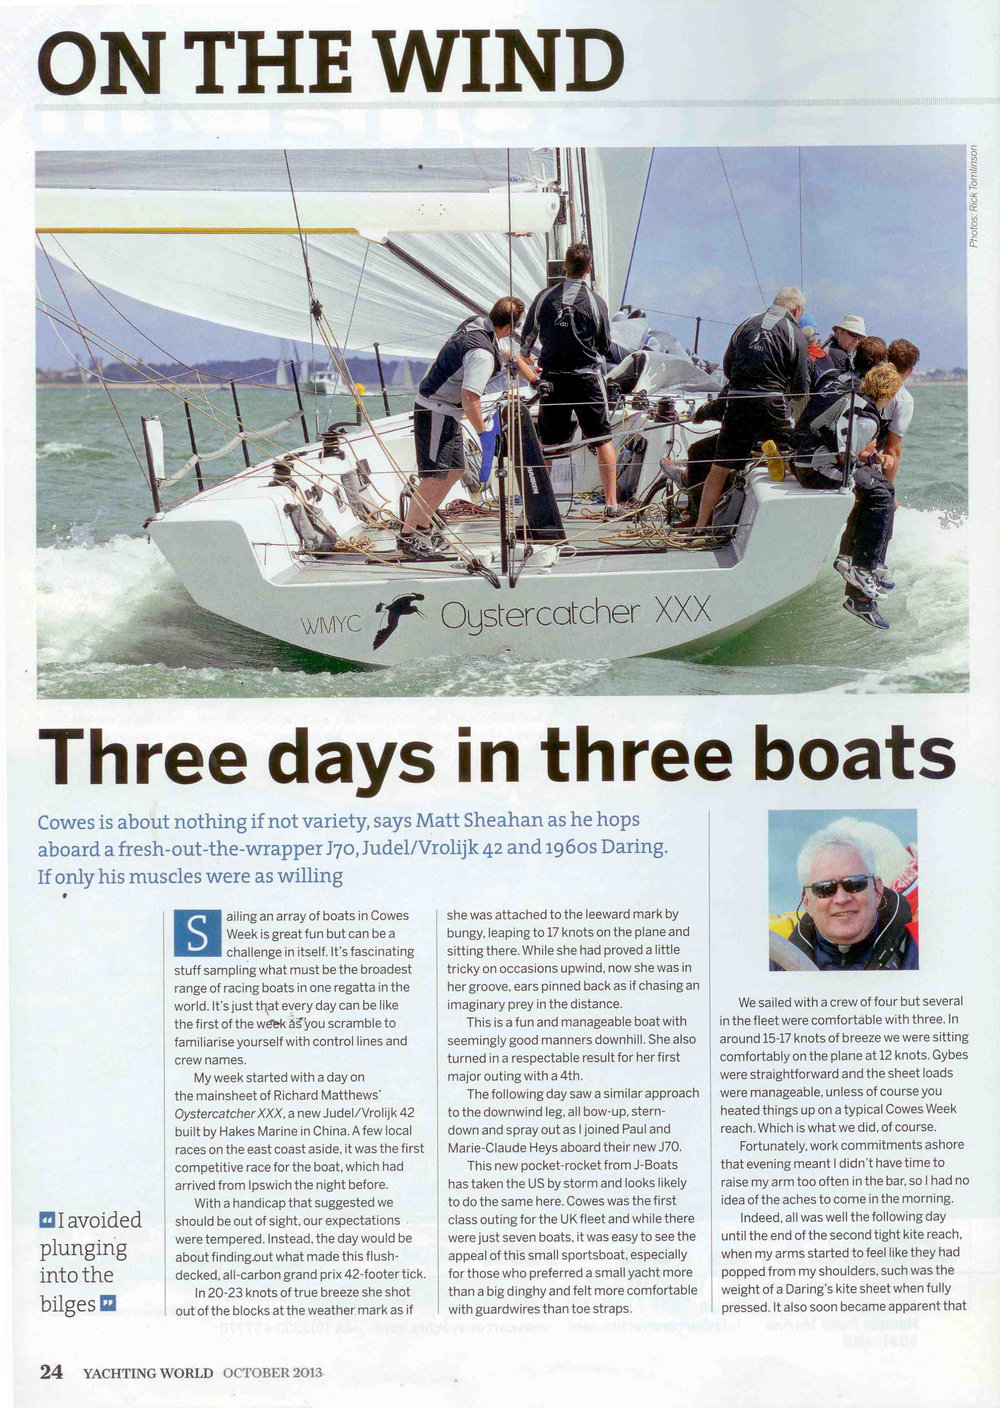 Yachting World Oct 2013 Oystercatcher XXX